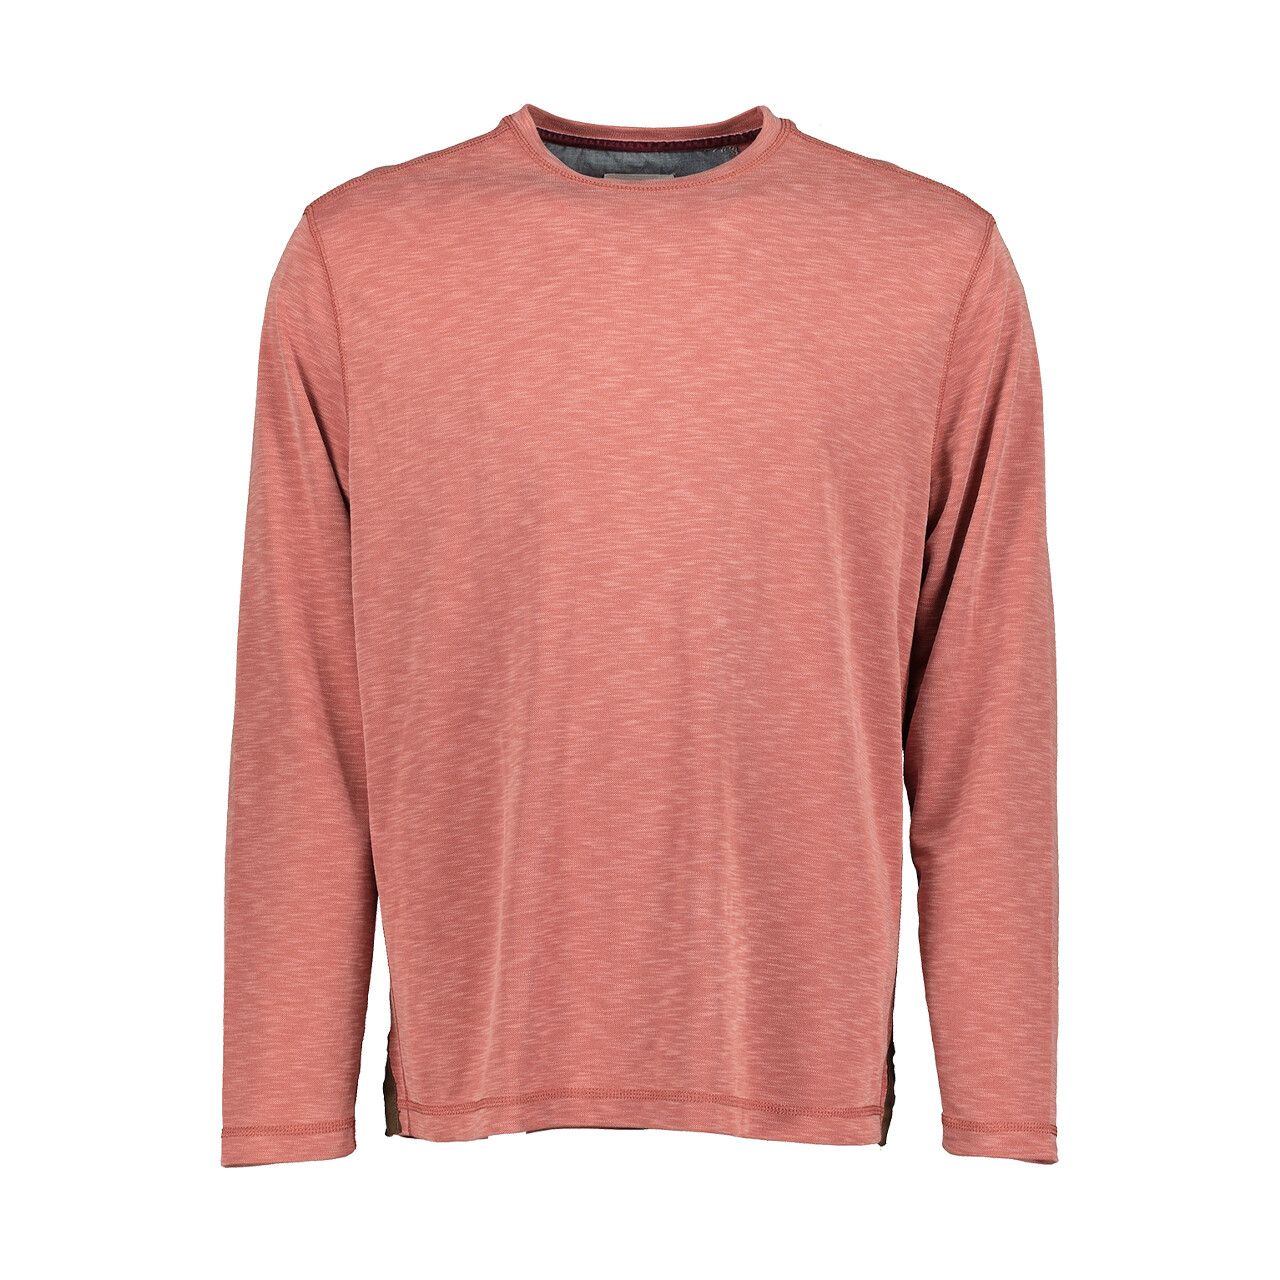 Men's Sueded Tencel Crew - Brick